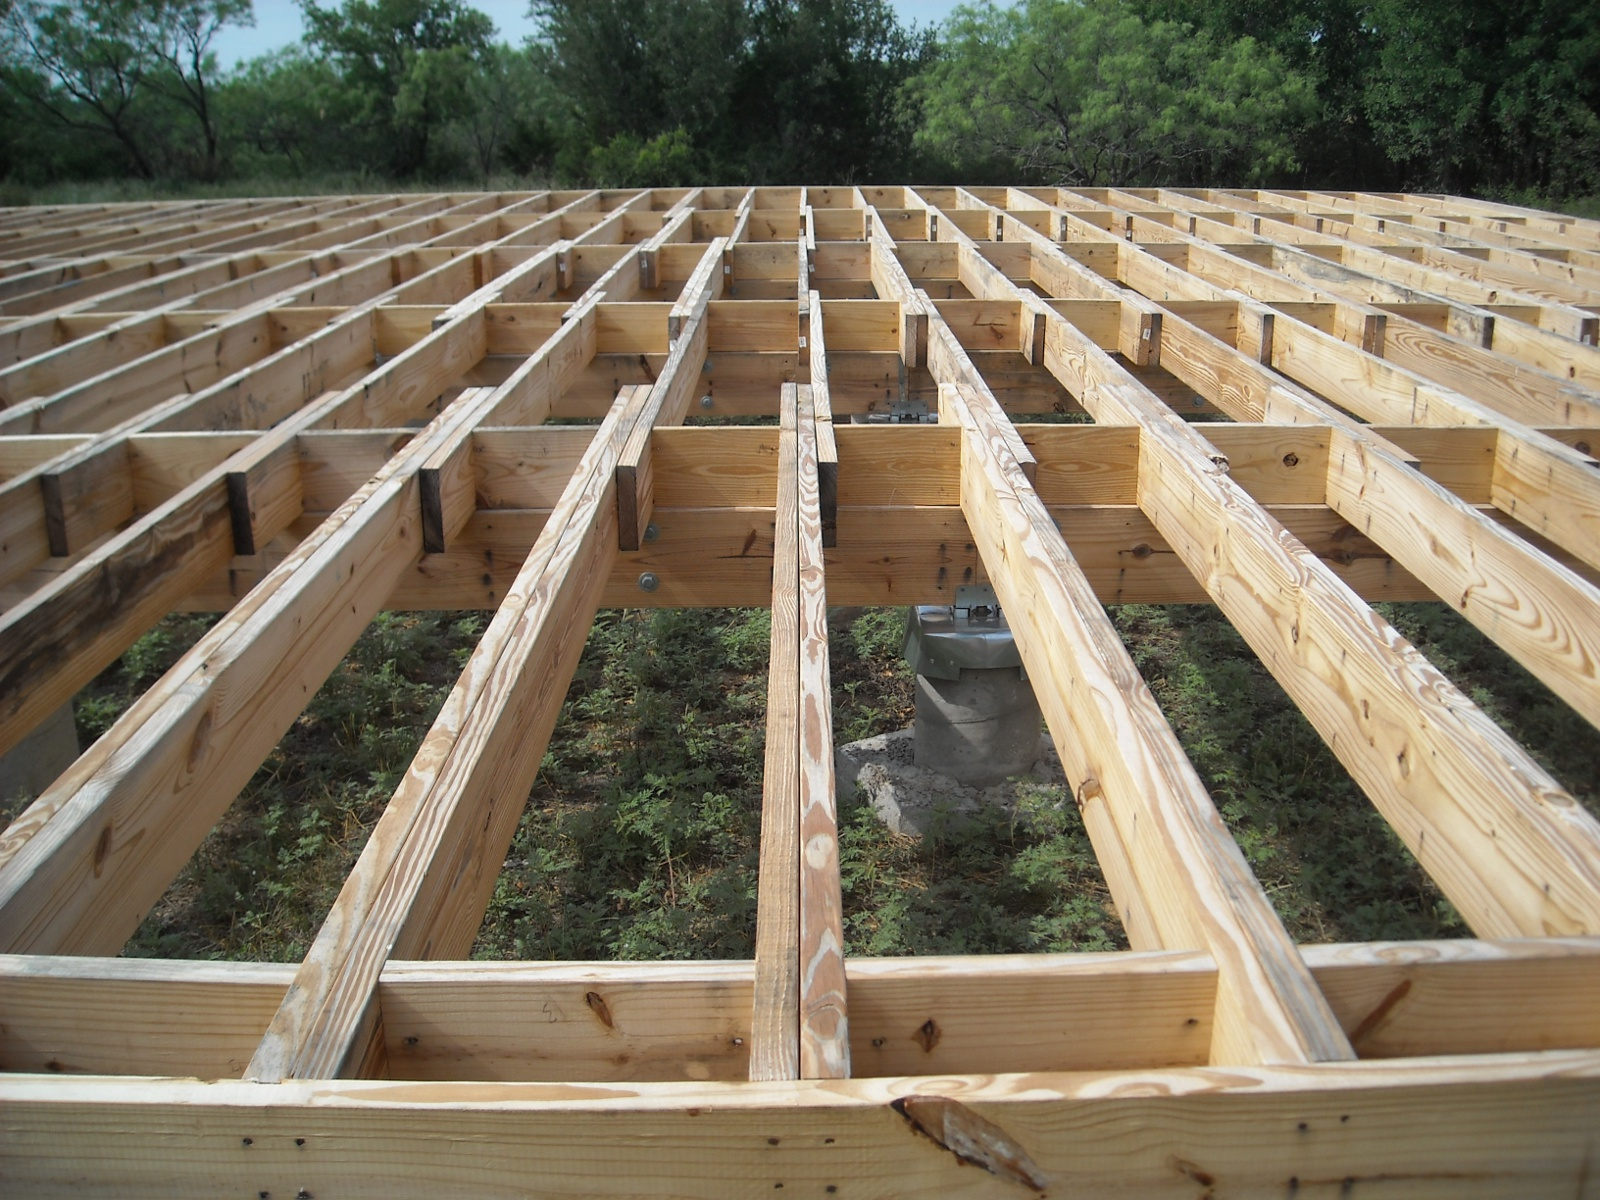 Wood deck joists deck design and ideas Floor joist trusses